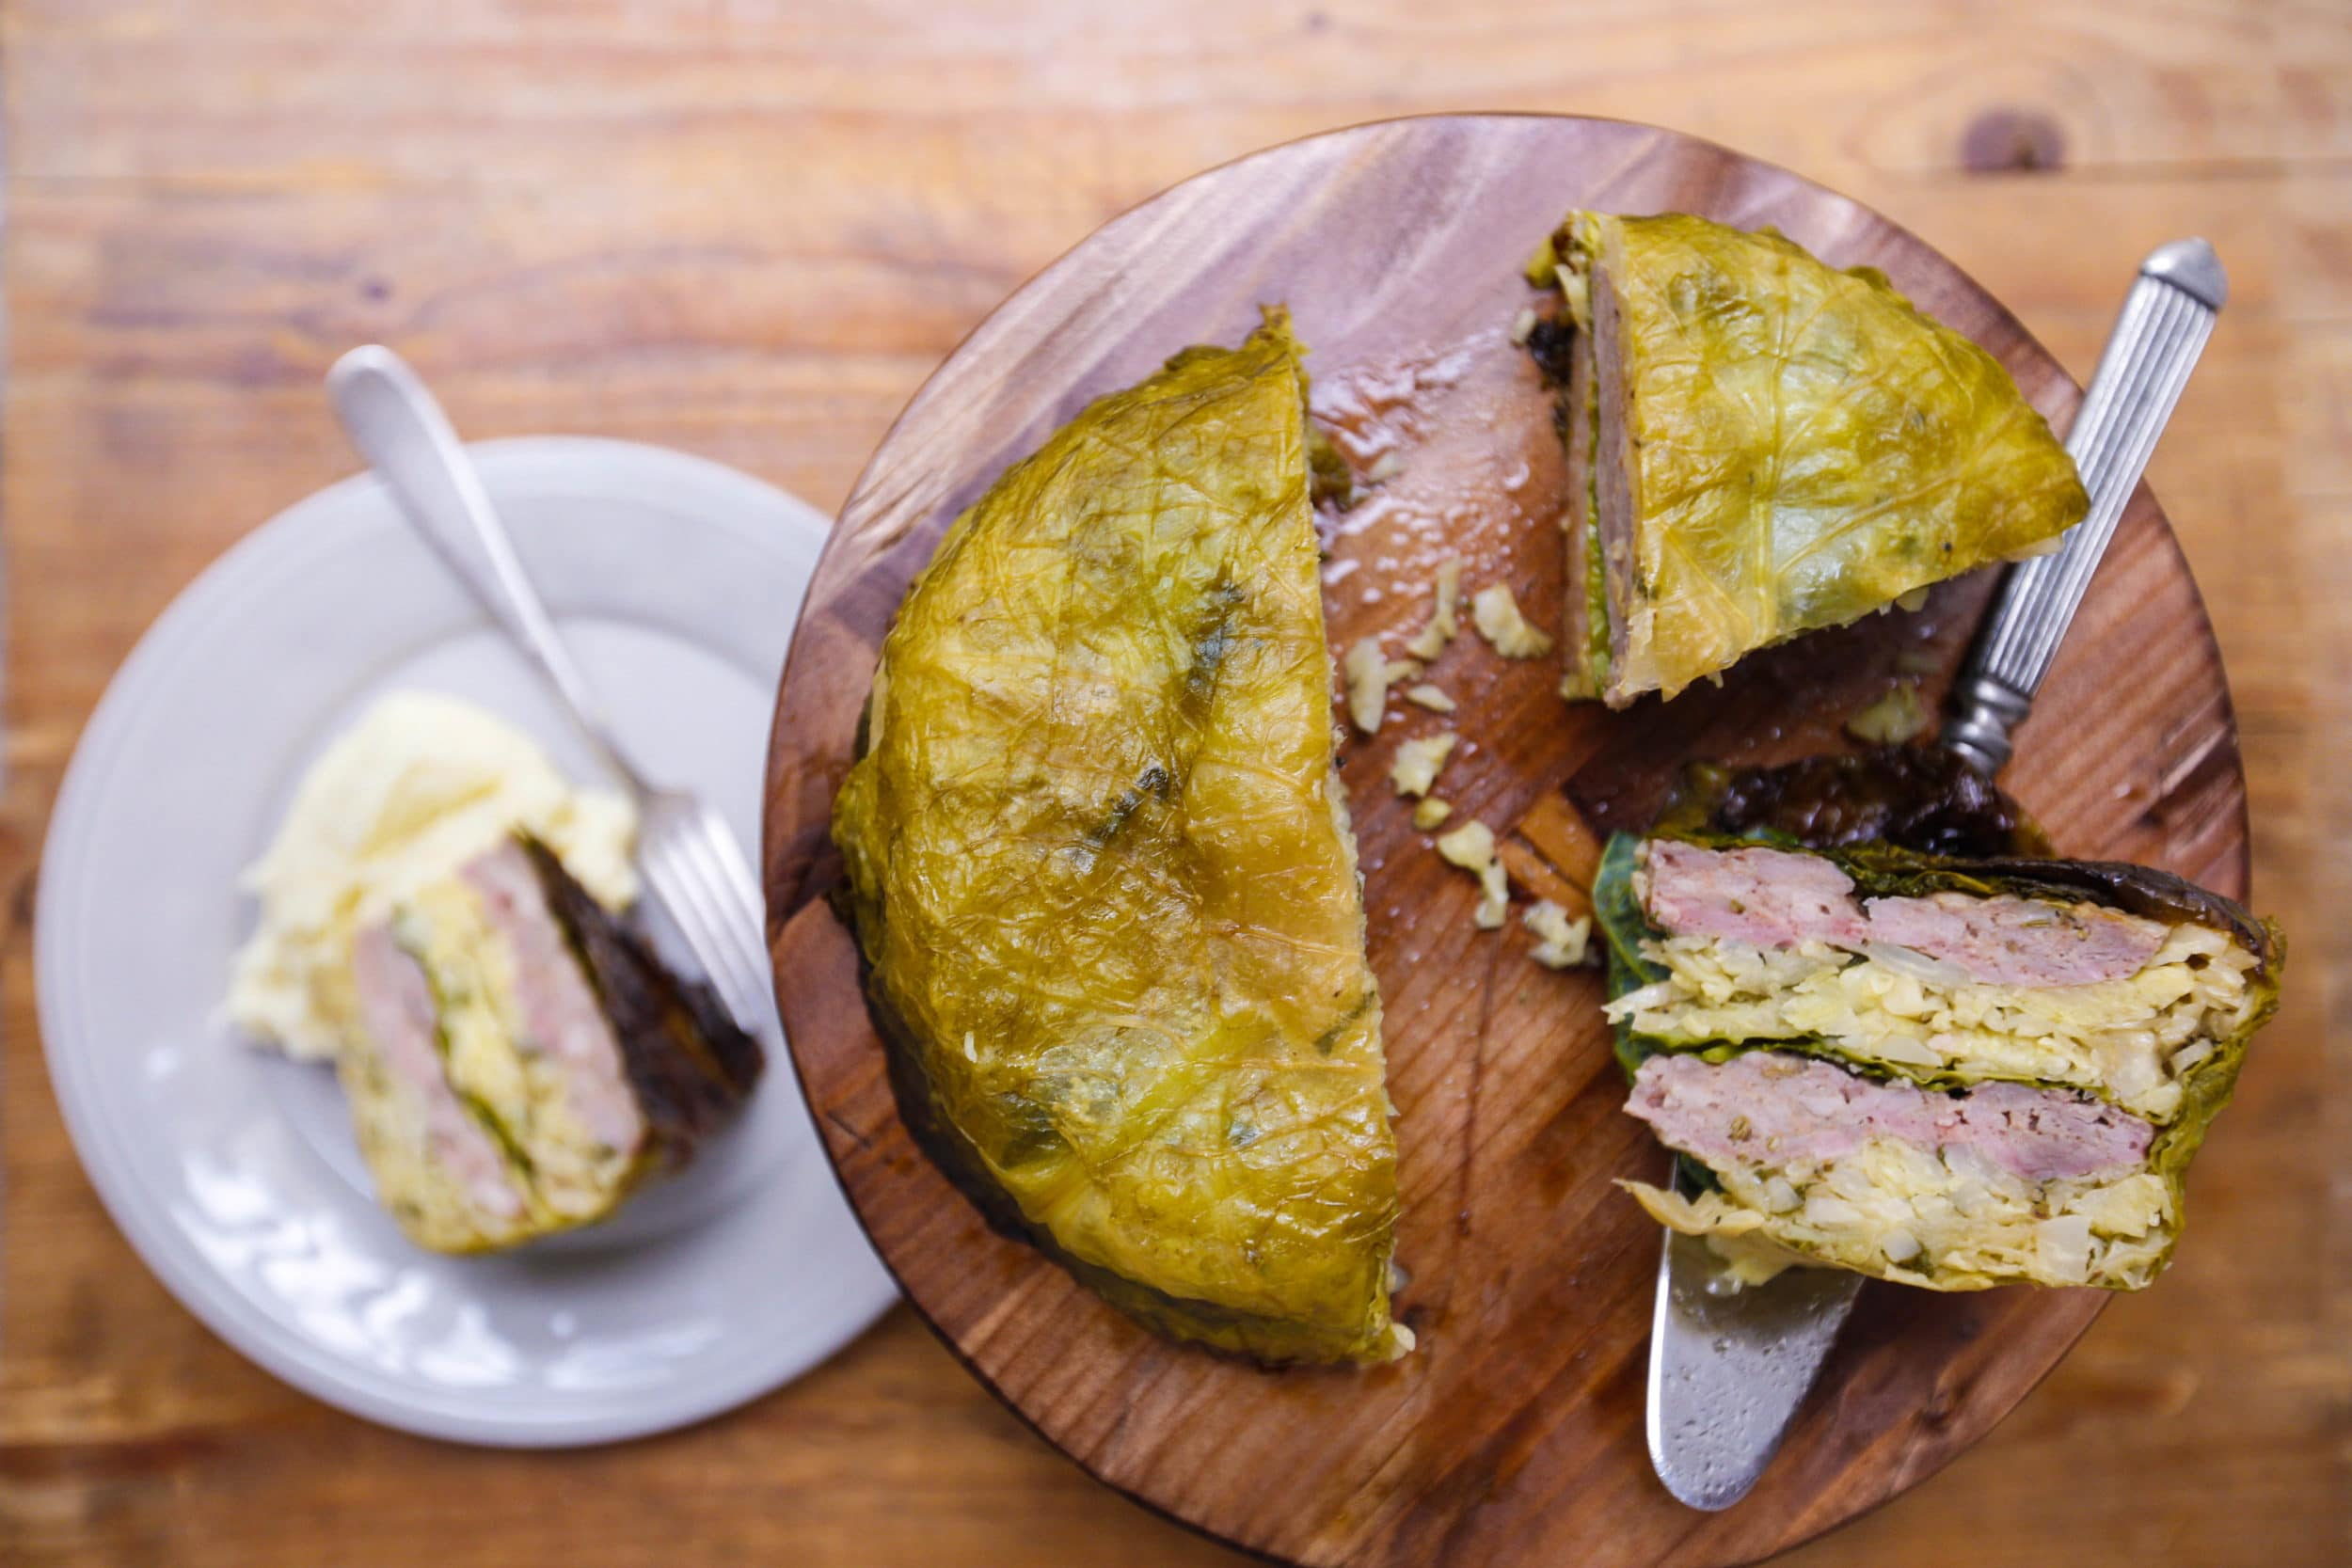 Stuffed Cabbage Cake with Sausage